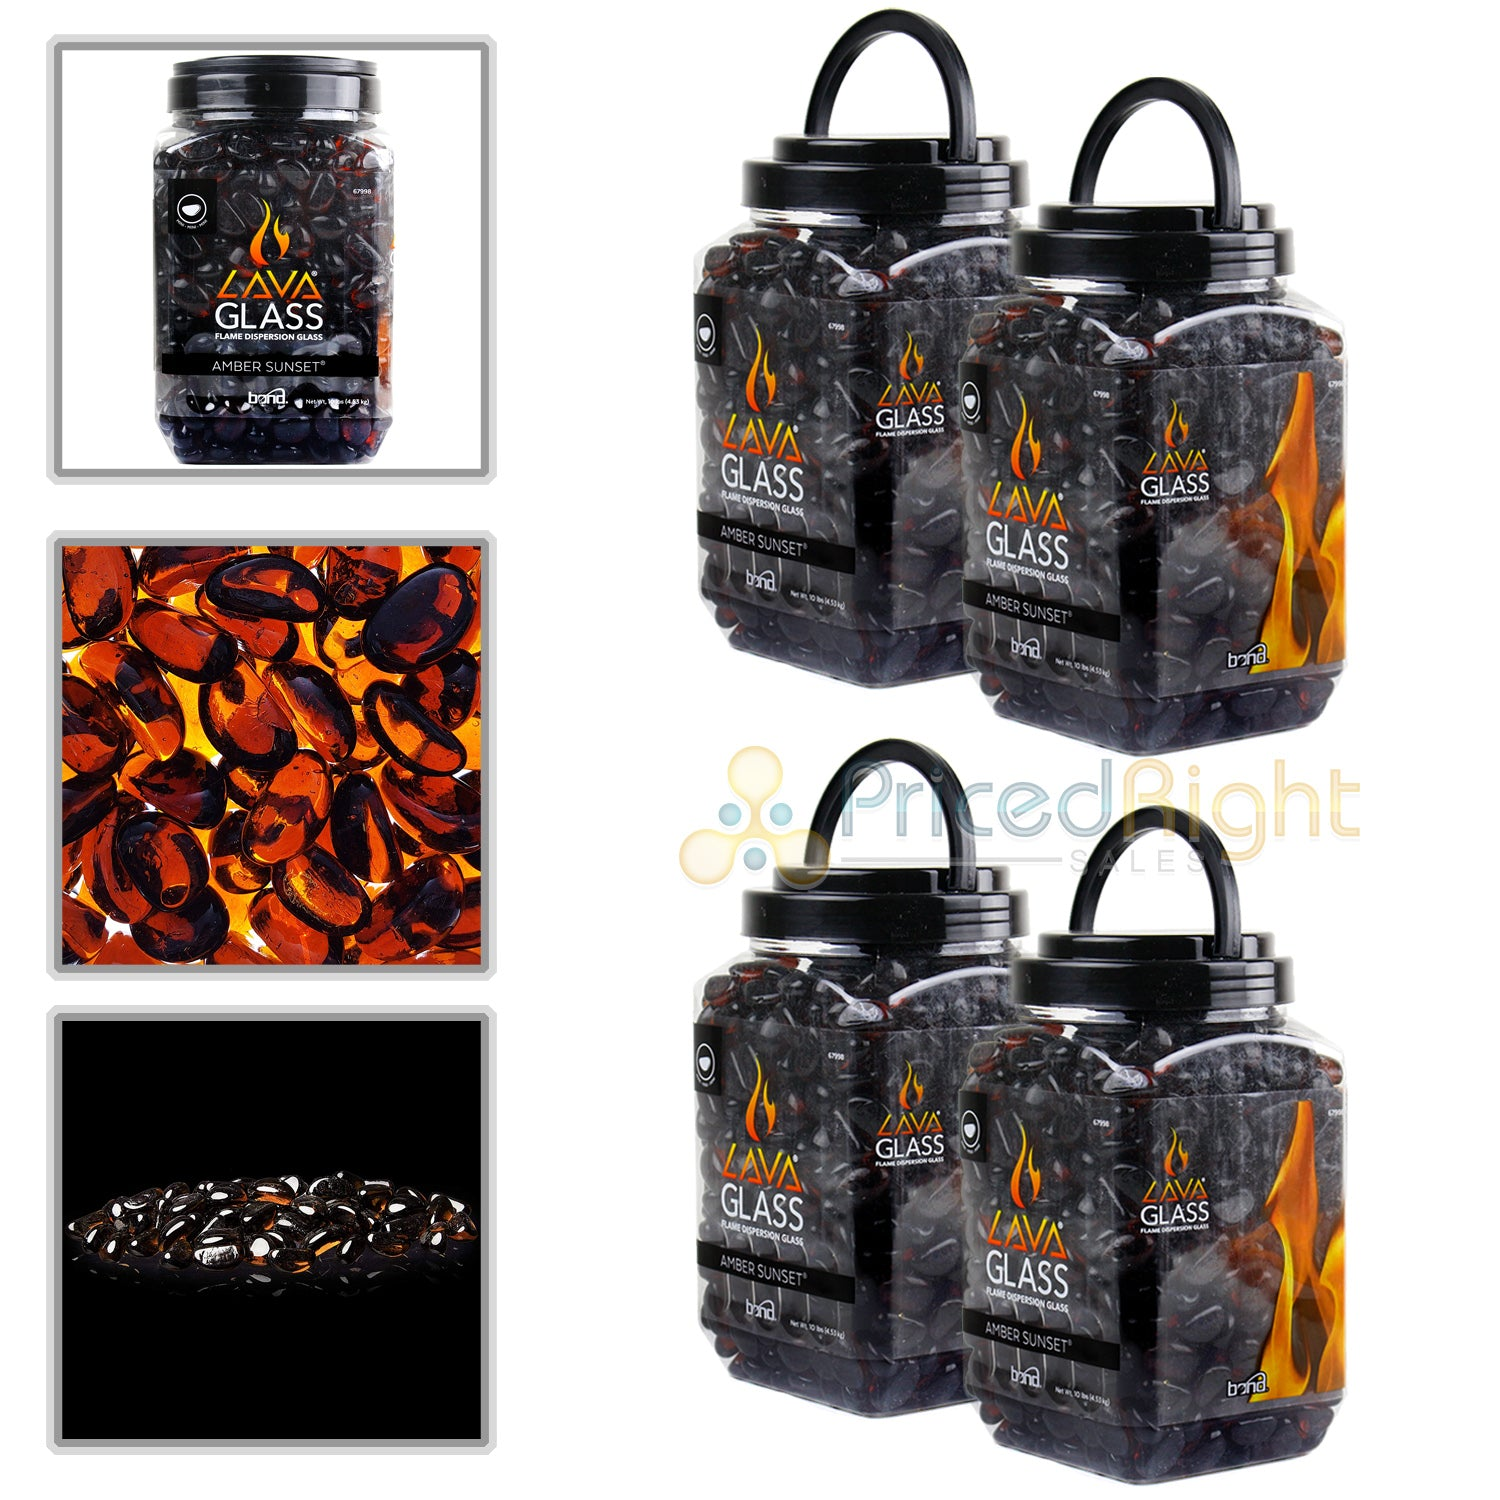 4 Pack Amber Sunset Mini Cut LavaGlass Firepit Dispersion Glass 40lbs Fireplace